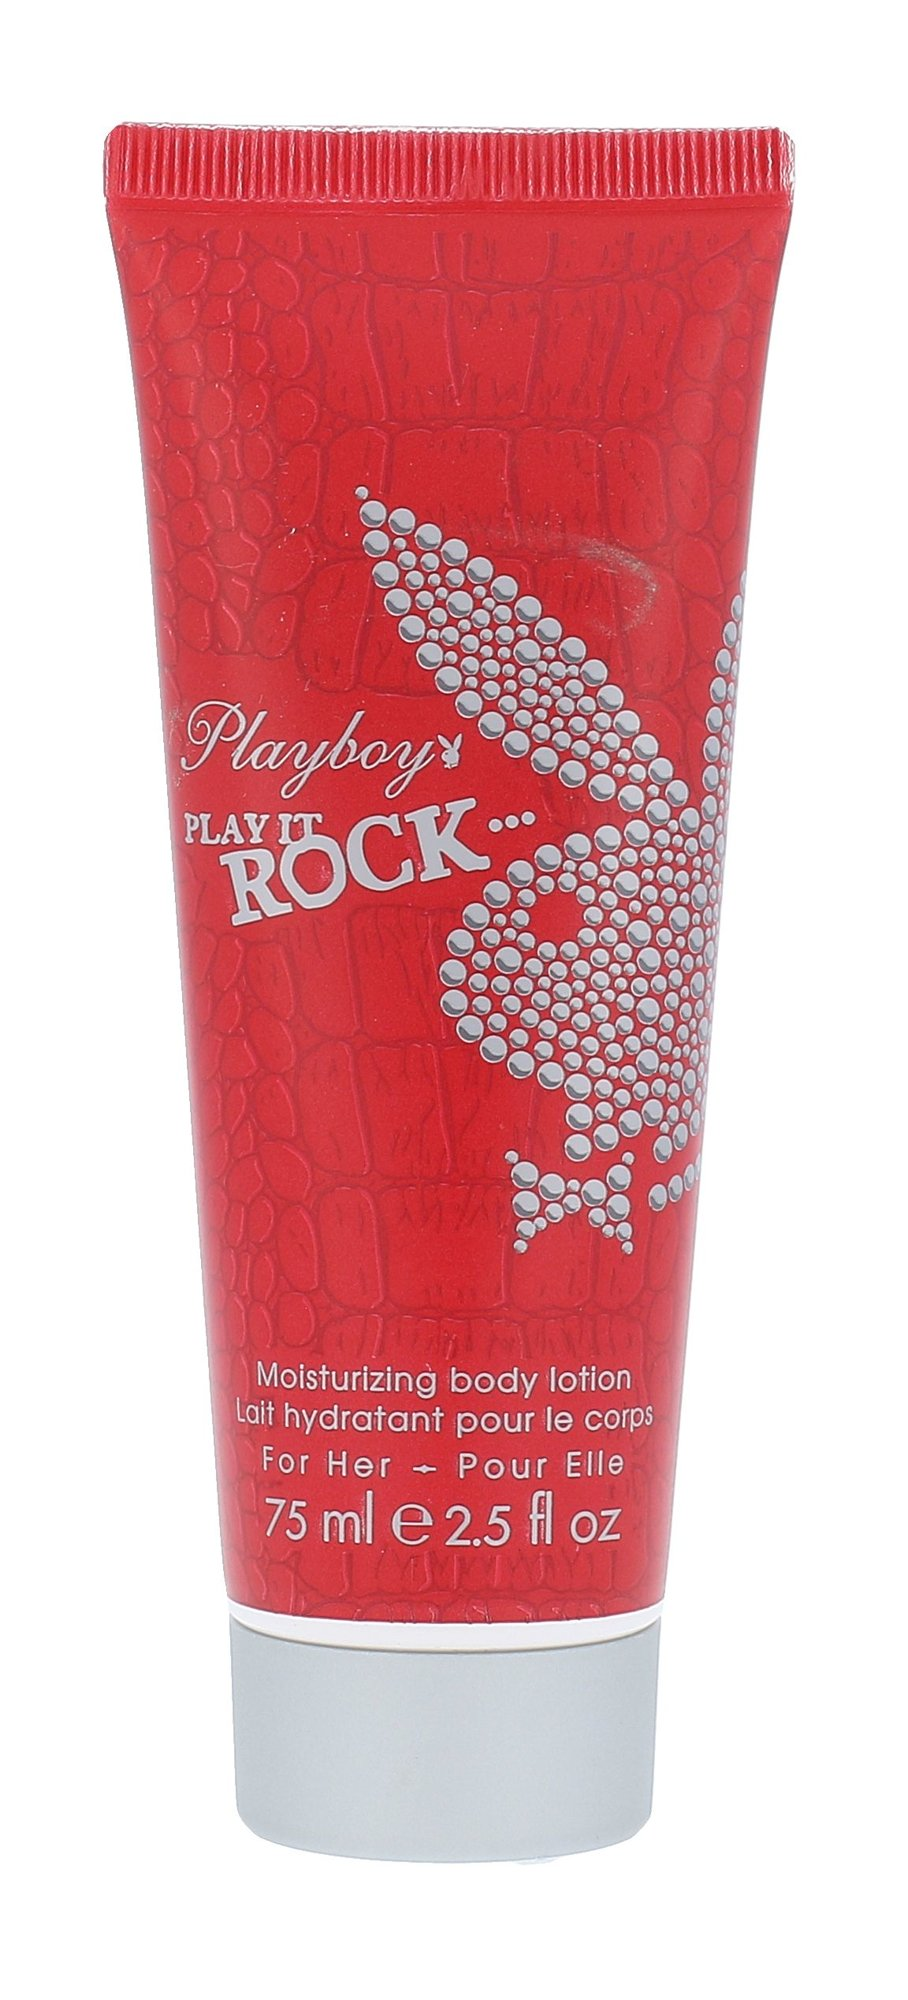 Playboy Play It Rock Body lotion 75ml